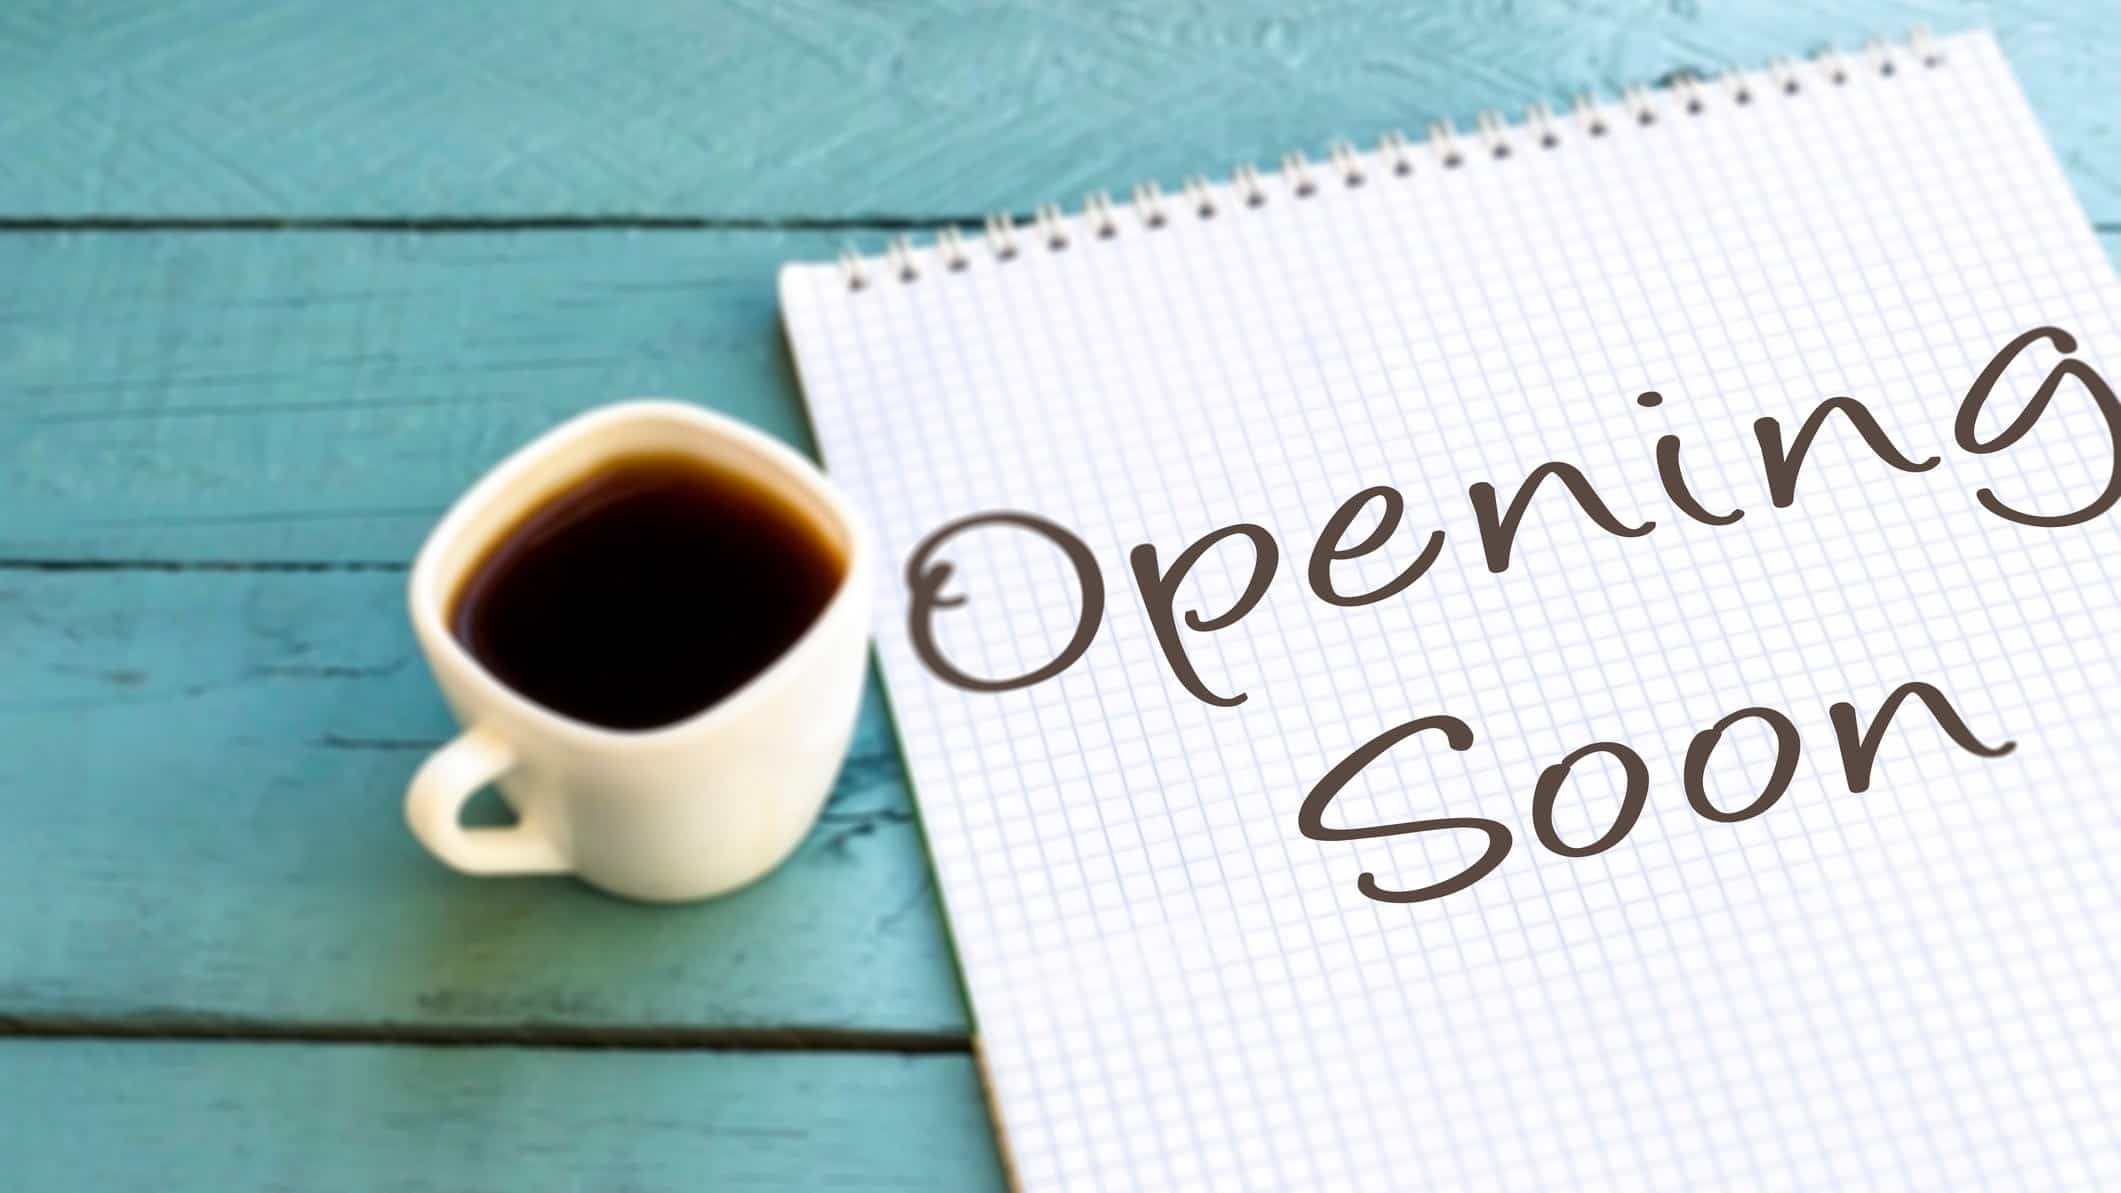 A shop sign next to a cup of coffee saying opening soon, indicating a company back in business on the share market